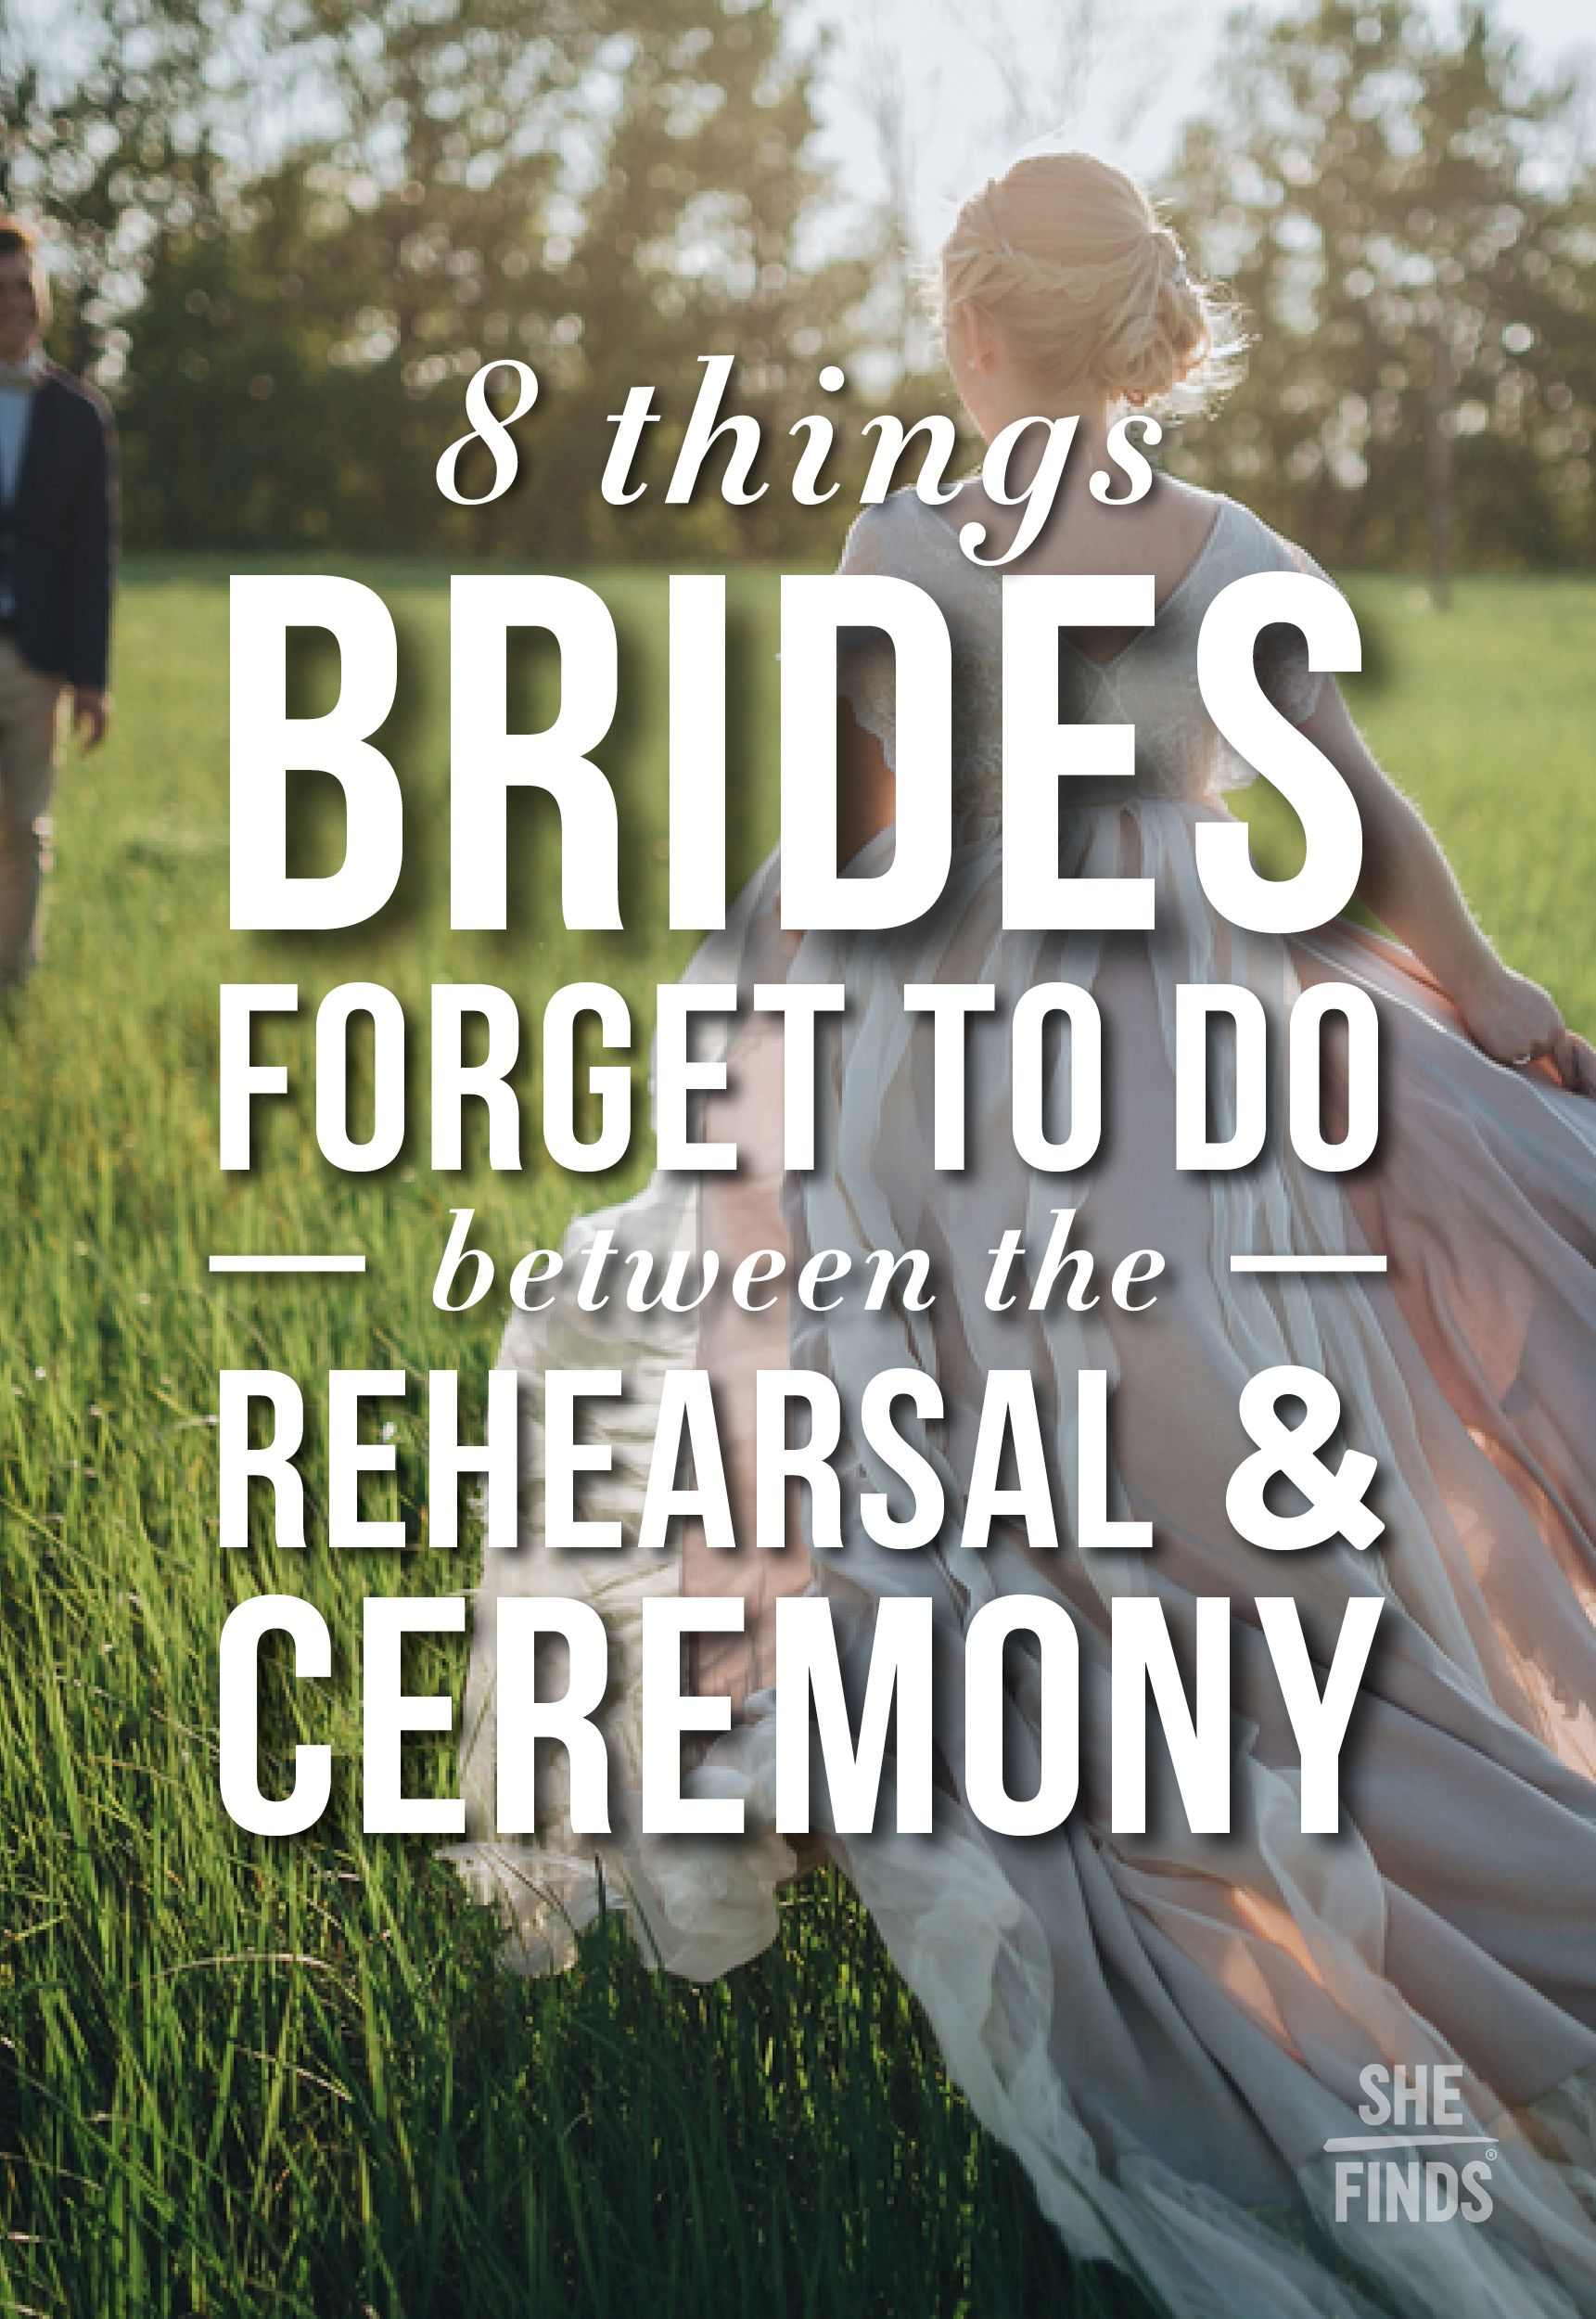 Secular Wedding Ceremony Scripts You Can Use